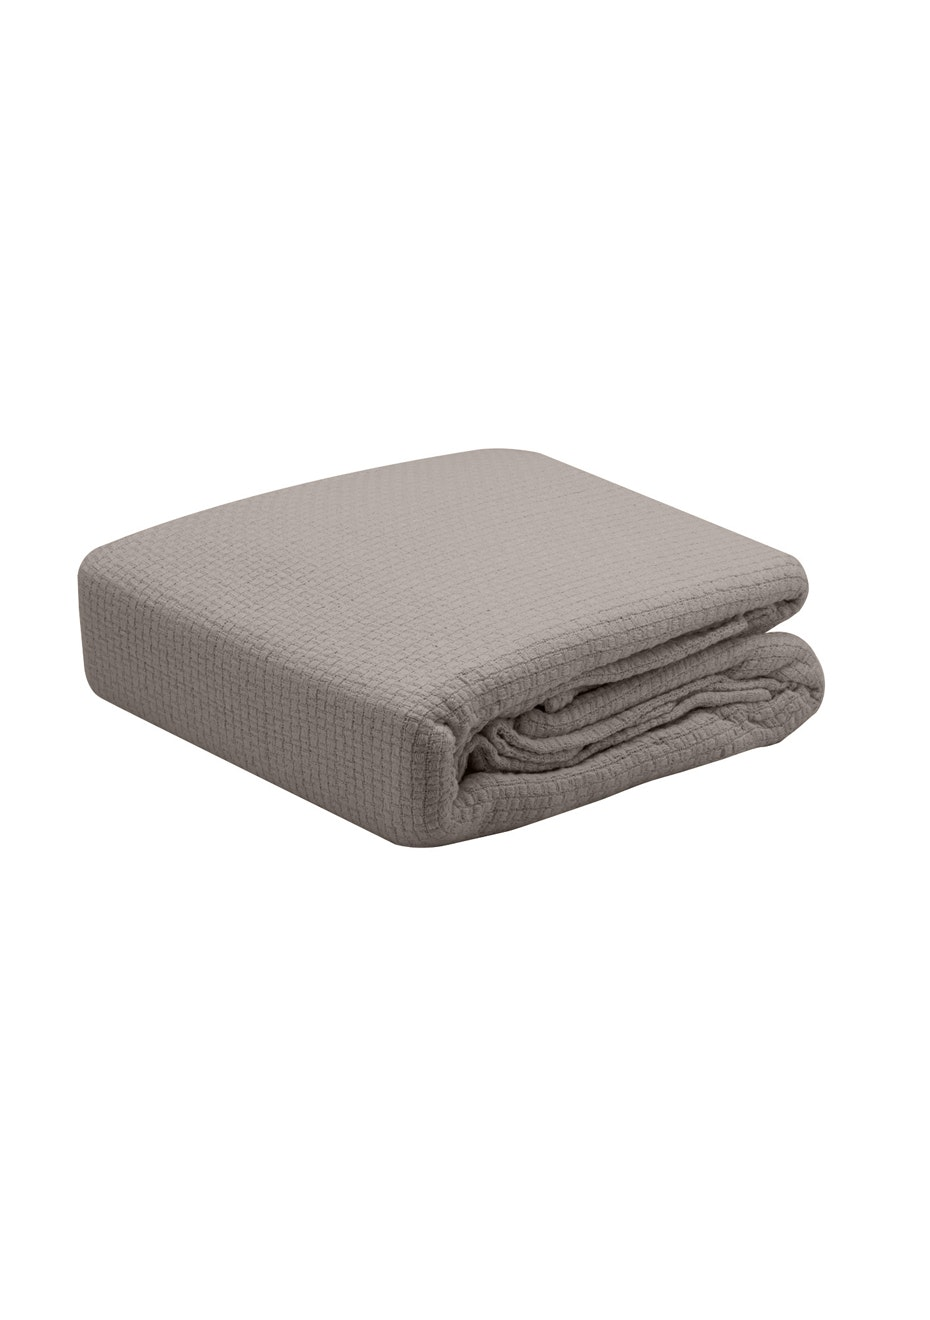 Pebble Weave Cotton Blanket - Stone - Queen/King